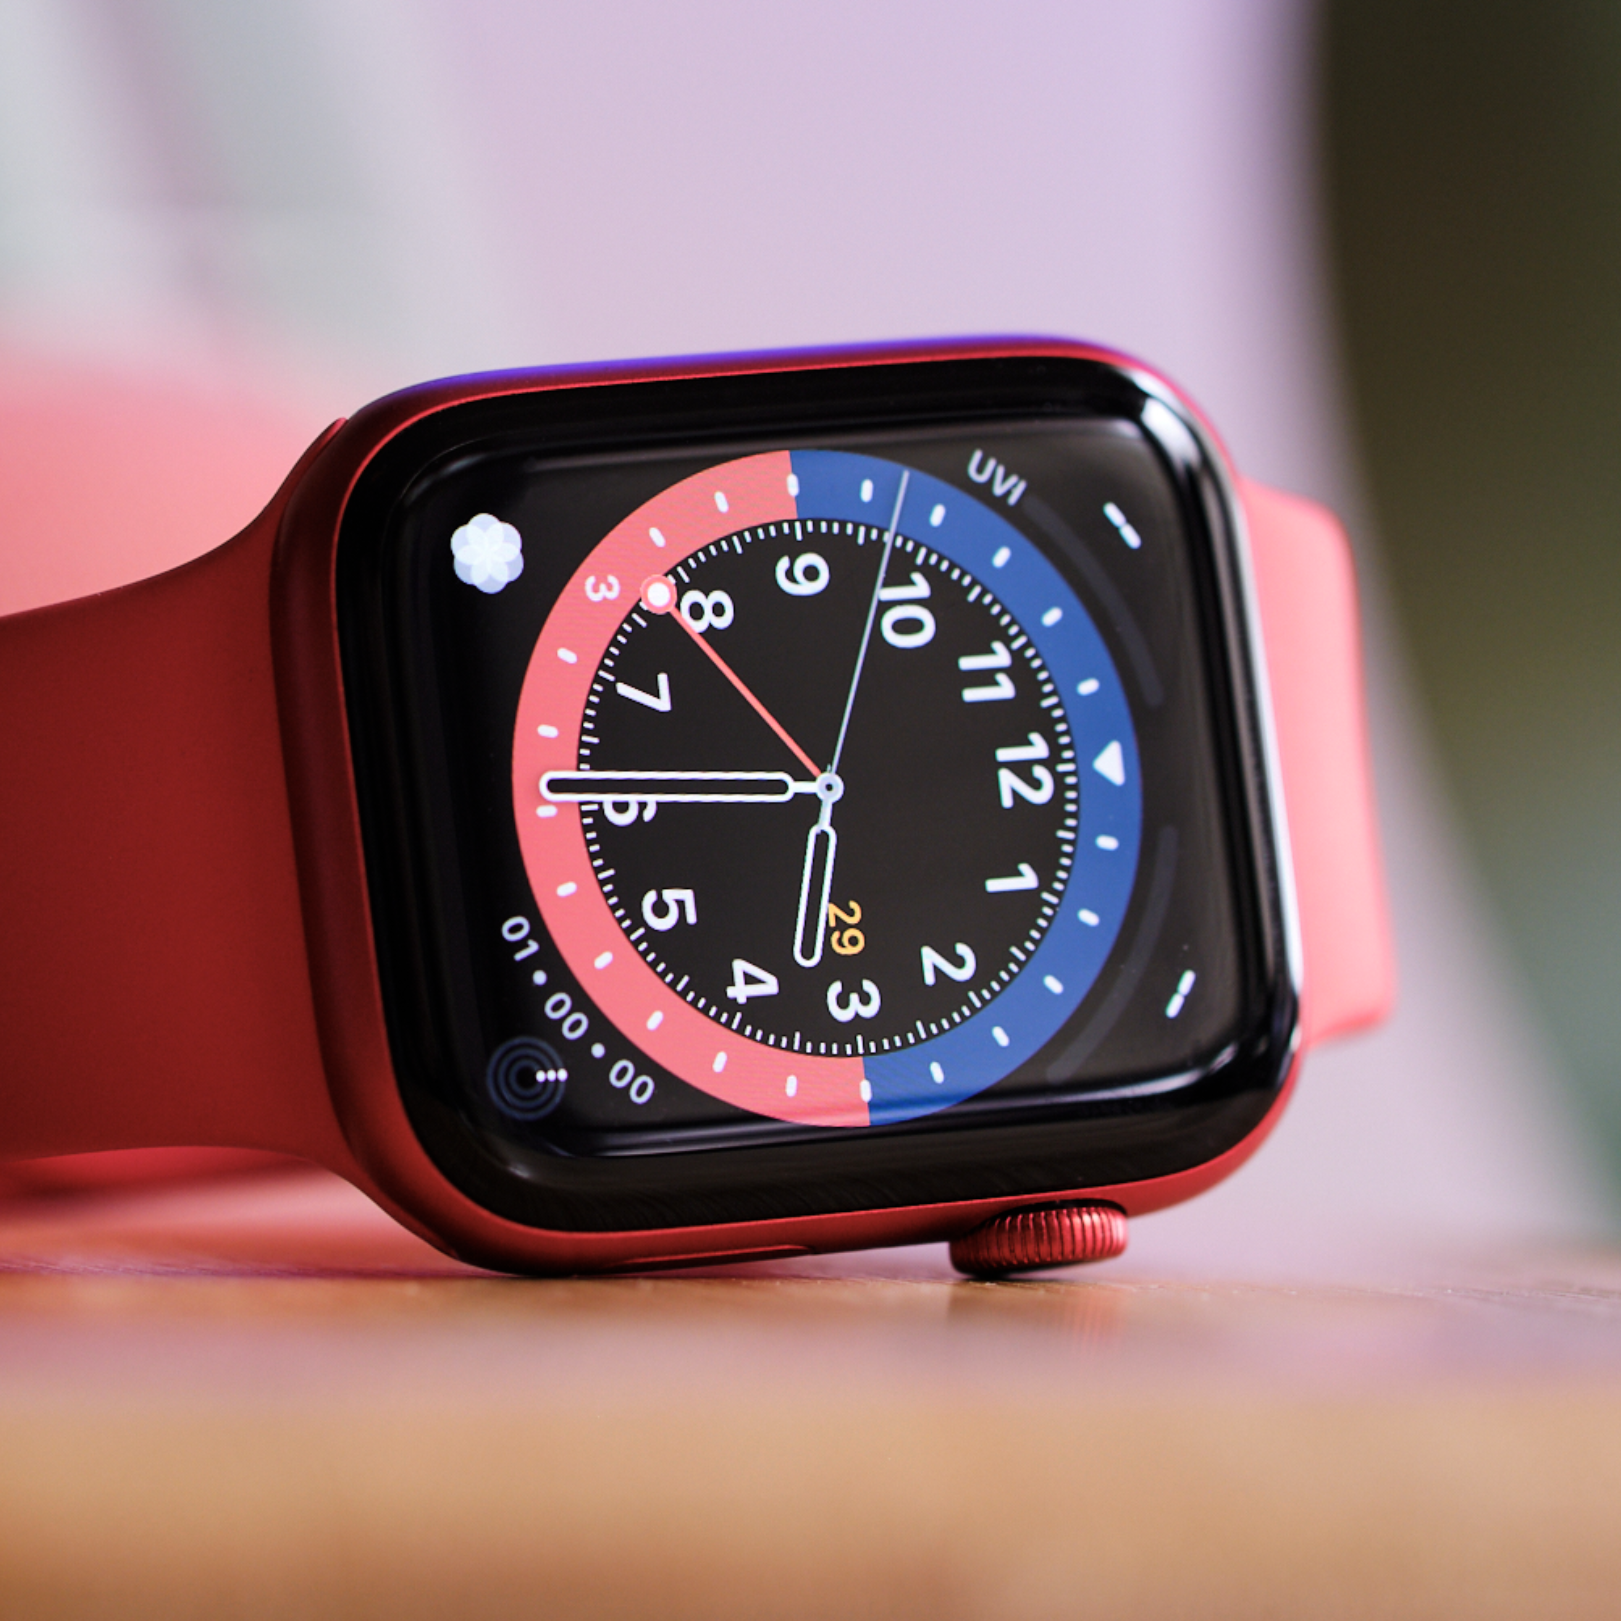 Apple Watch Series 6 review: minute improvements - The Verge